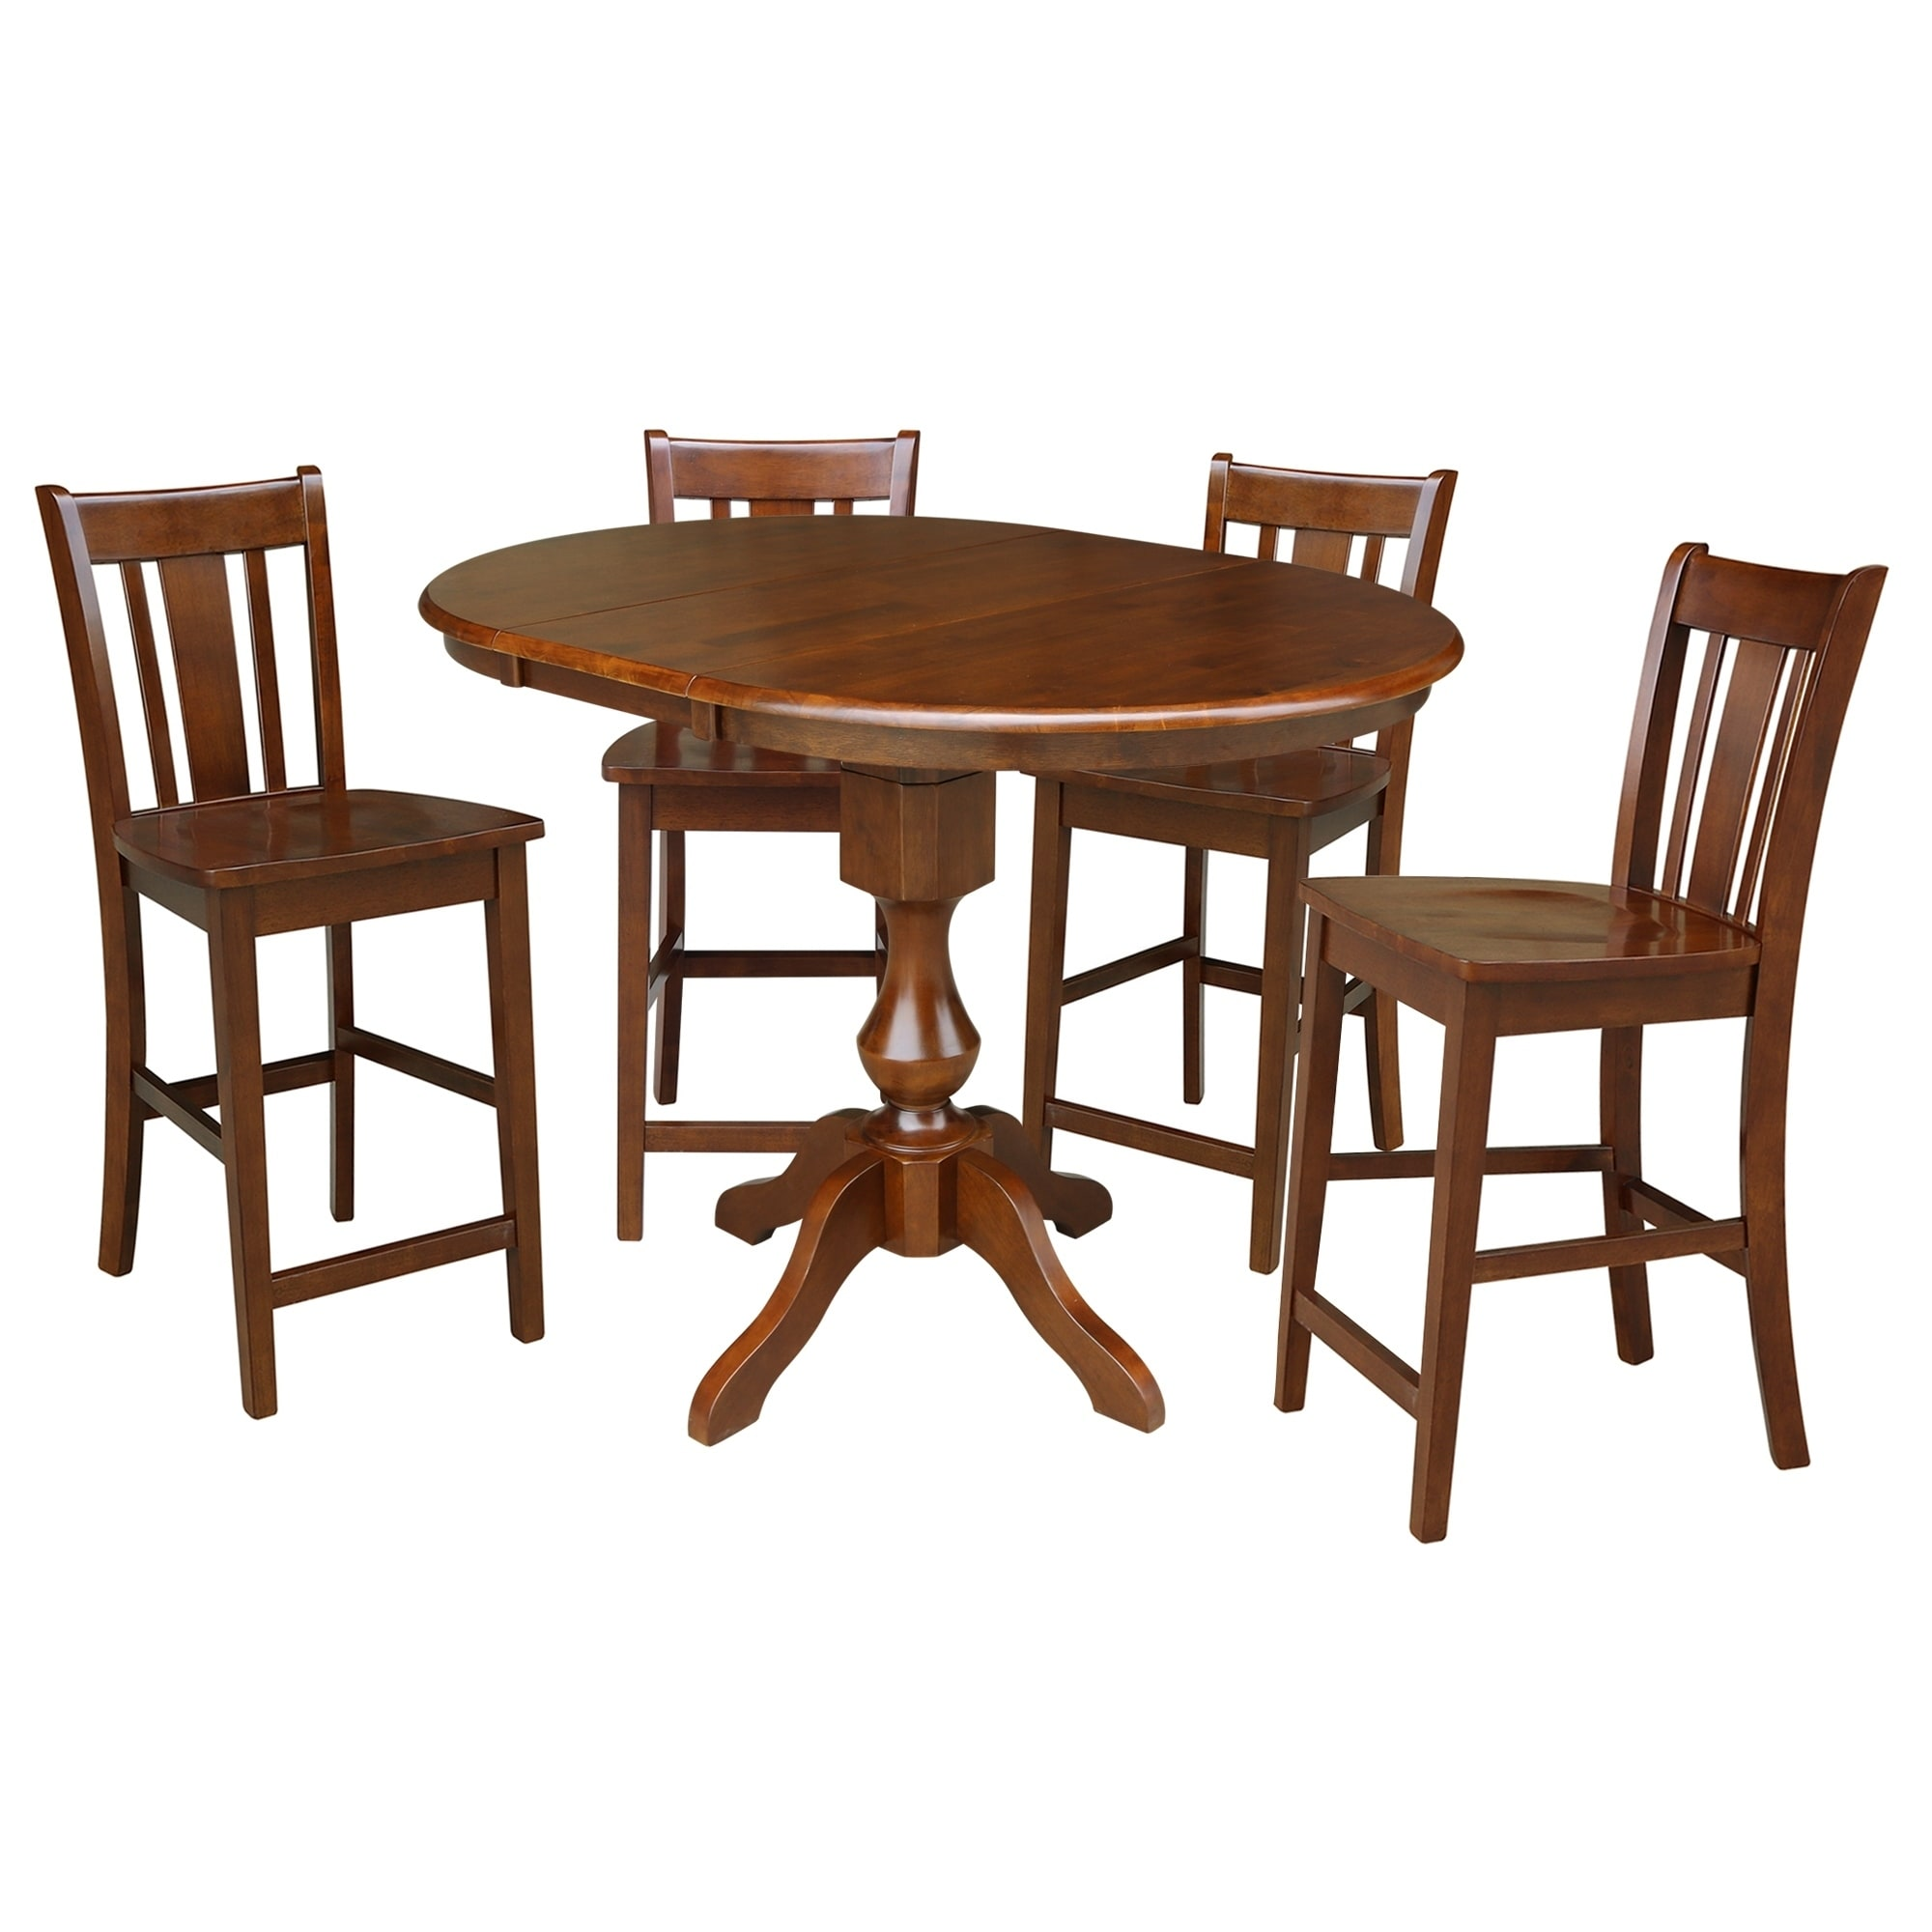 36 Round Counter Height Dining Table With 12 Leaf And 4 San Remo Stools Espresso 5 Piece Set